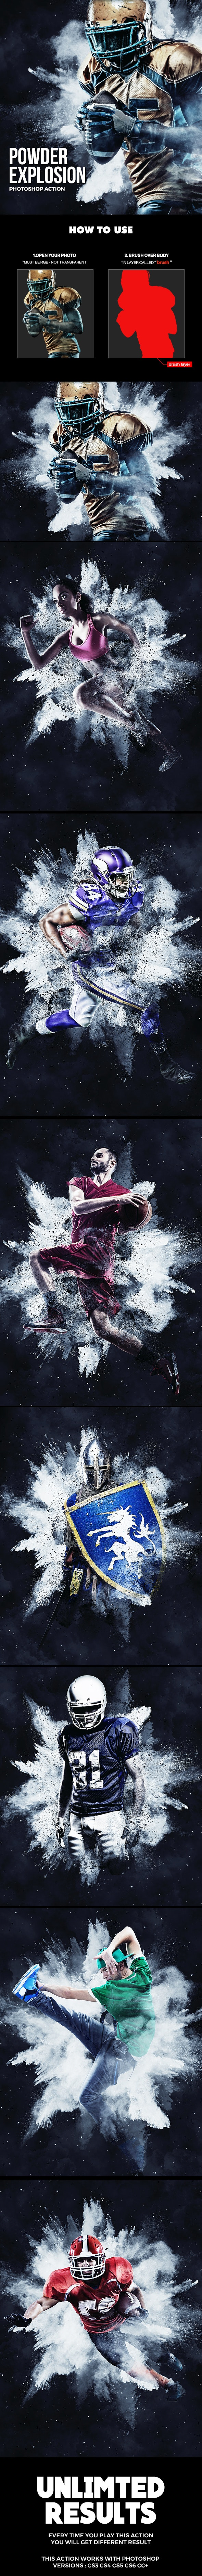 Powder Explosion Photoshop Action - Photo Effects Actions